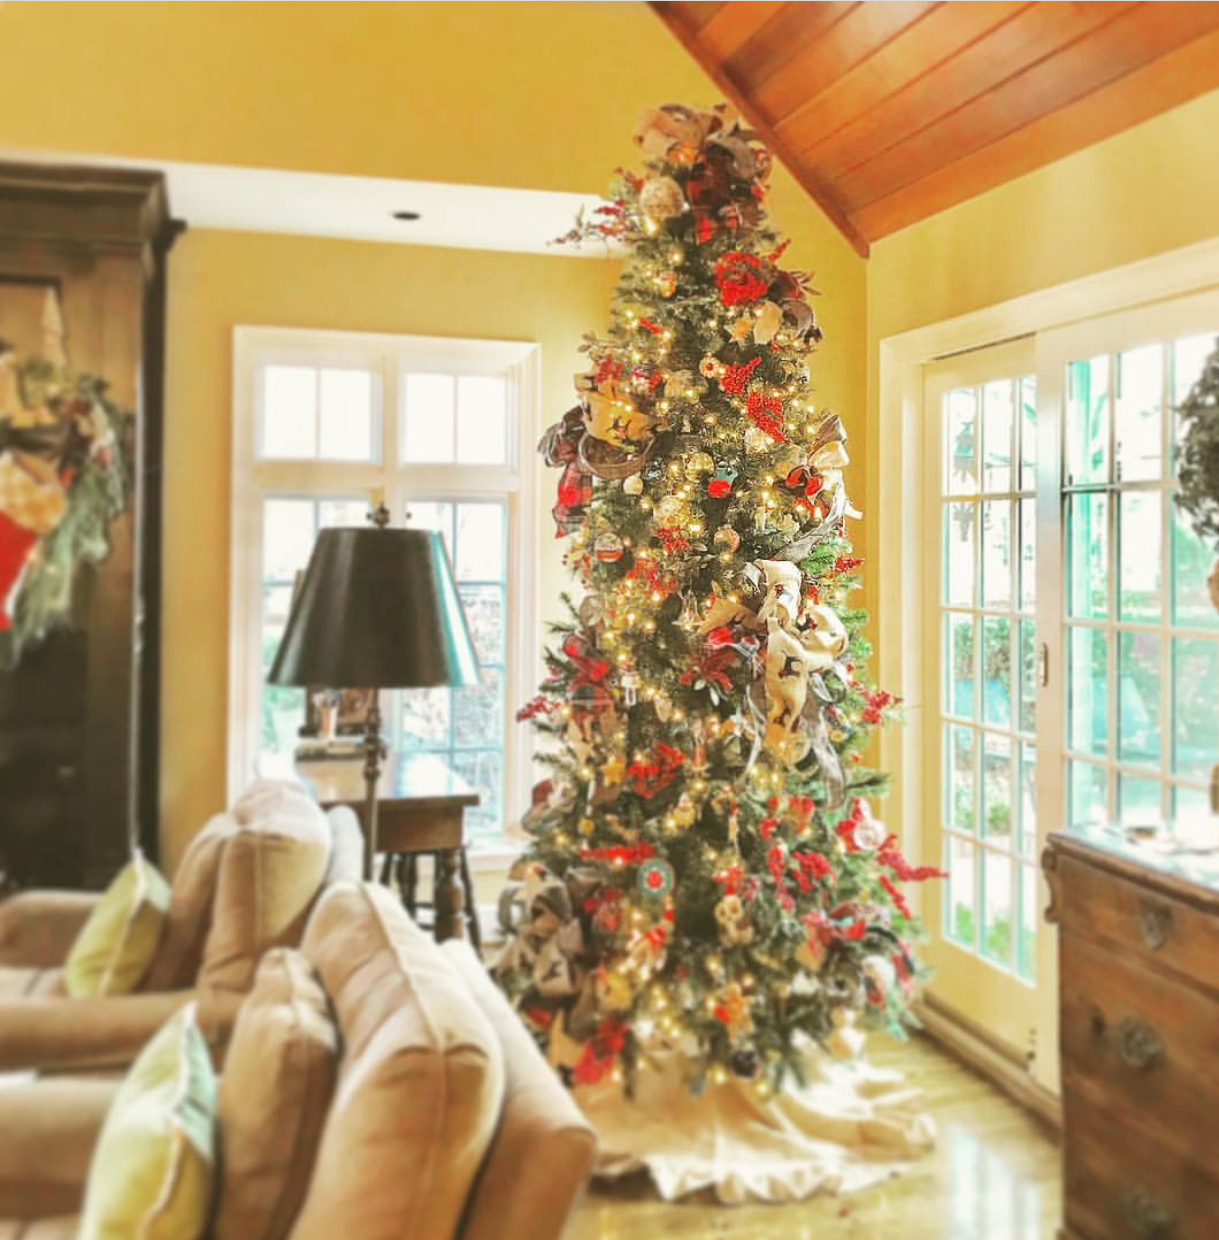 Our family room tree has such a wide variety of ornaments that are special to our family - everything from homemade ornaments by our children to drill team ornaments to my grandmother's handmade angel ornaments to ornaments of our dogs to special ornaments passed down through the years from family.